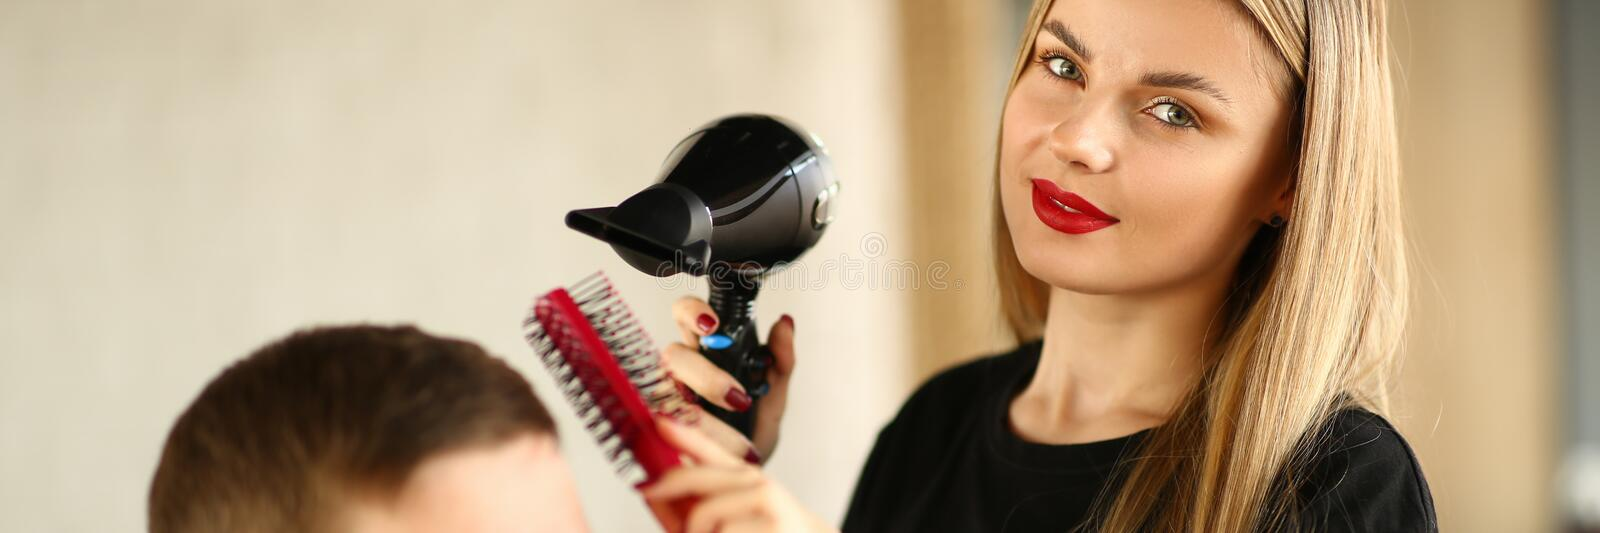 Hairstylist Styling Hairdo with Dryer and Comb. Young Hairdresser Using Hairdryer and Hairbrush Drying for Haircut Styling. Woman Stylist Drying Male Hairdo in royalty free stock images